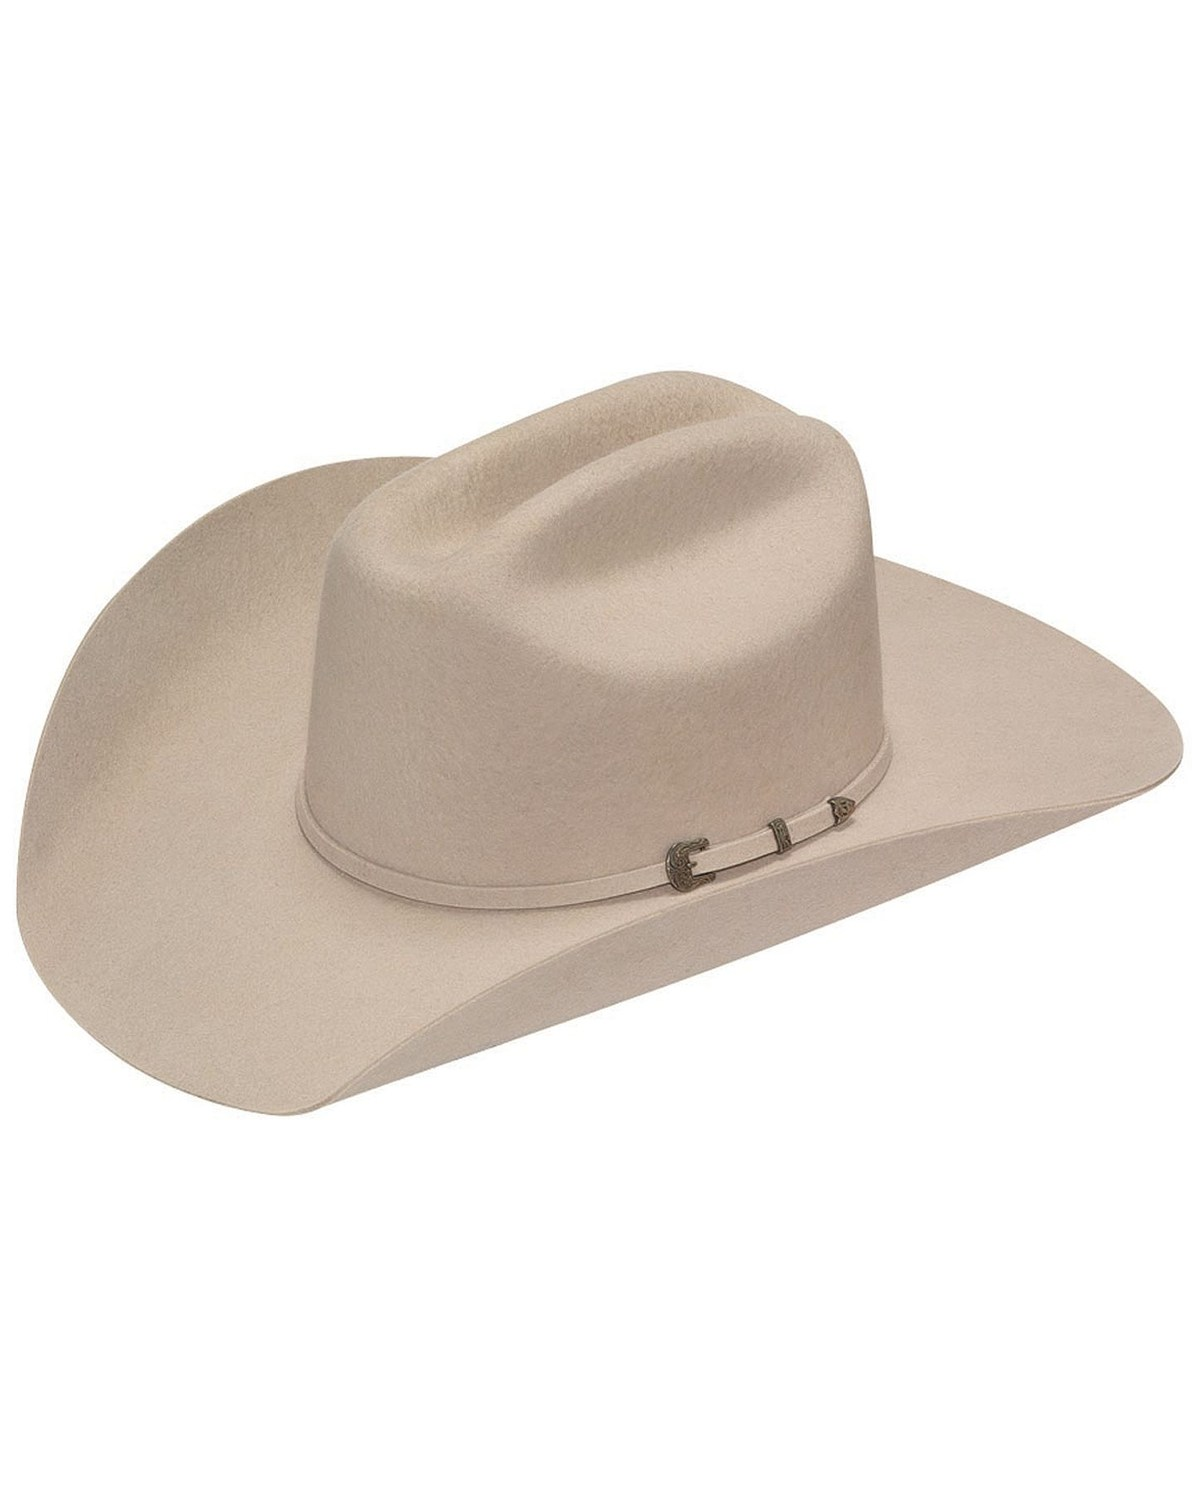 Twister Dallas 2X Wool Cowboy Hat  54349653c1d